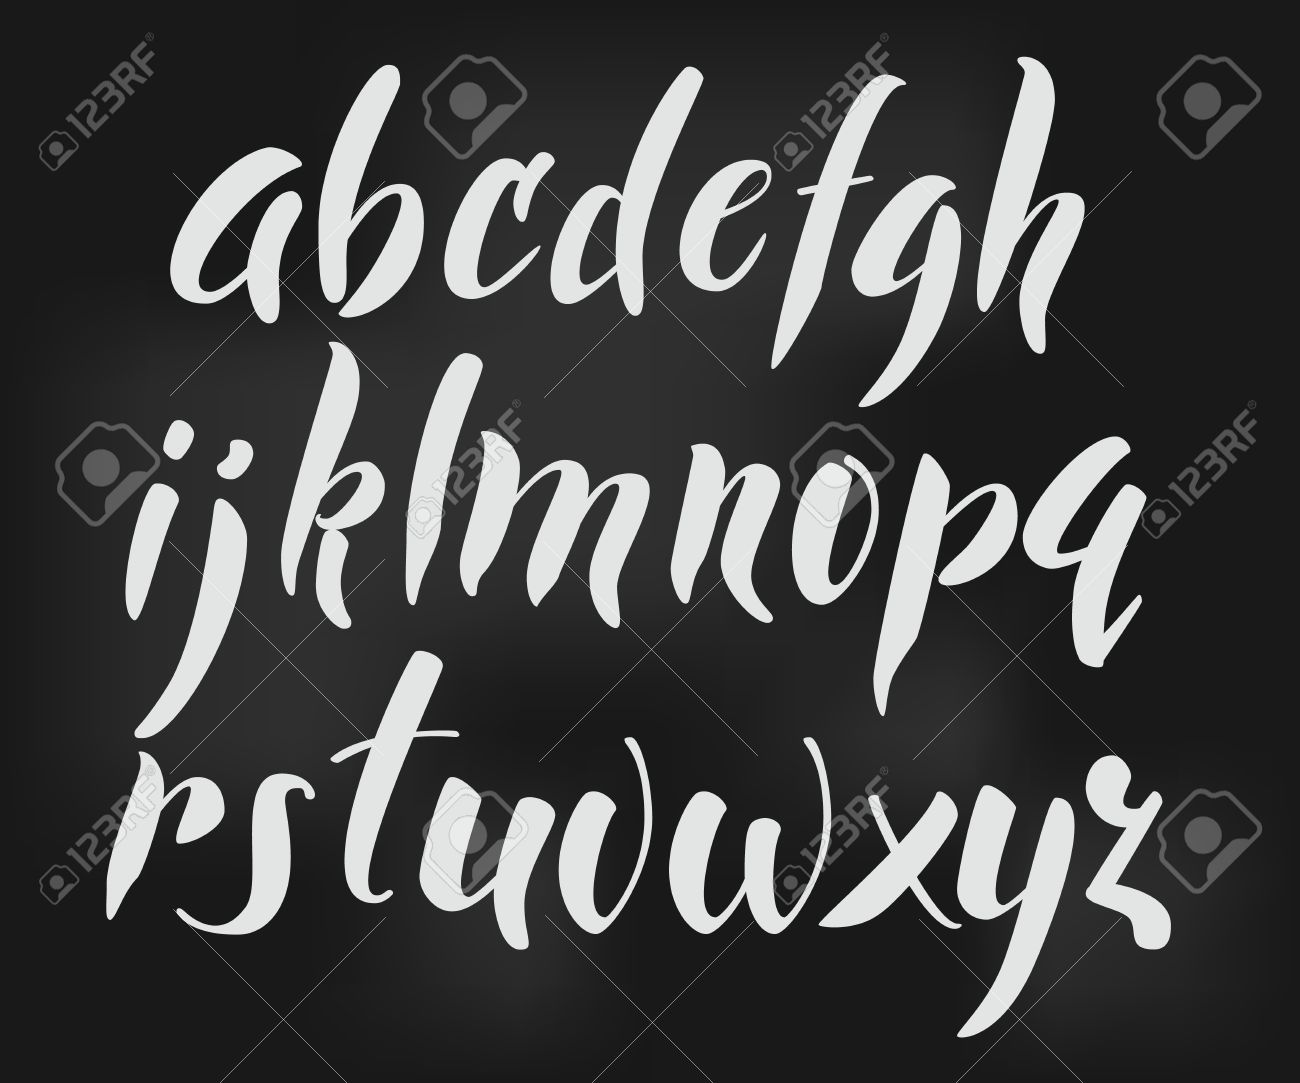 Letter In Cursive Brush Style Vector Alphabet Calligraphy Low Case Letters Cursive